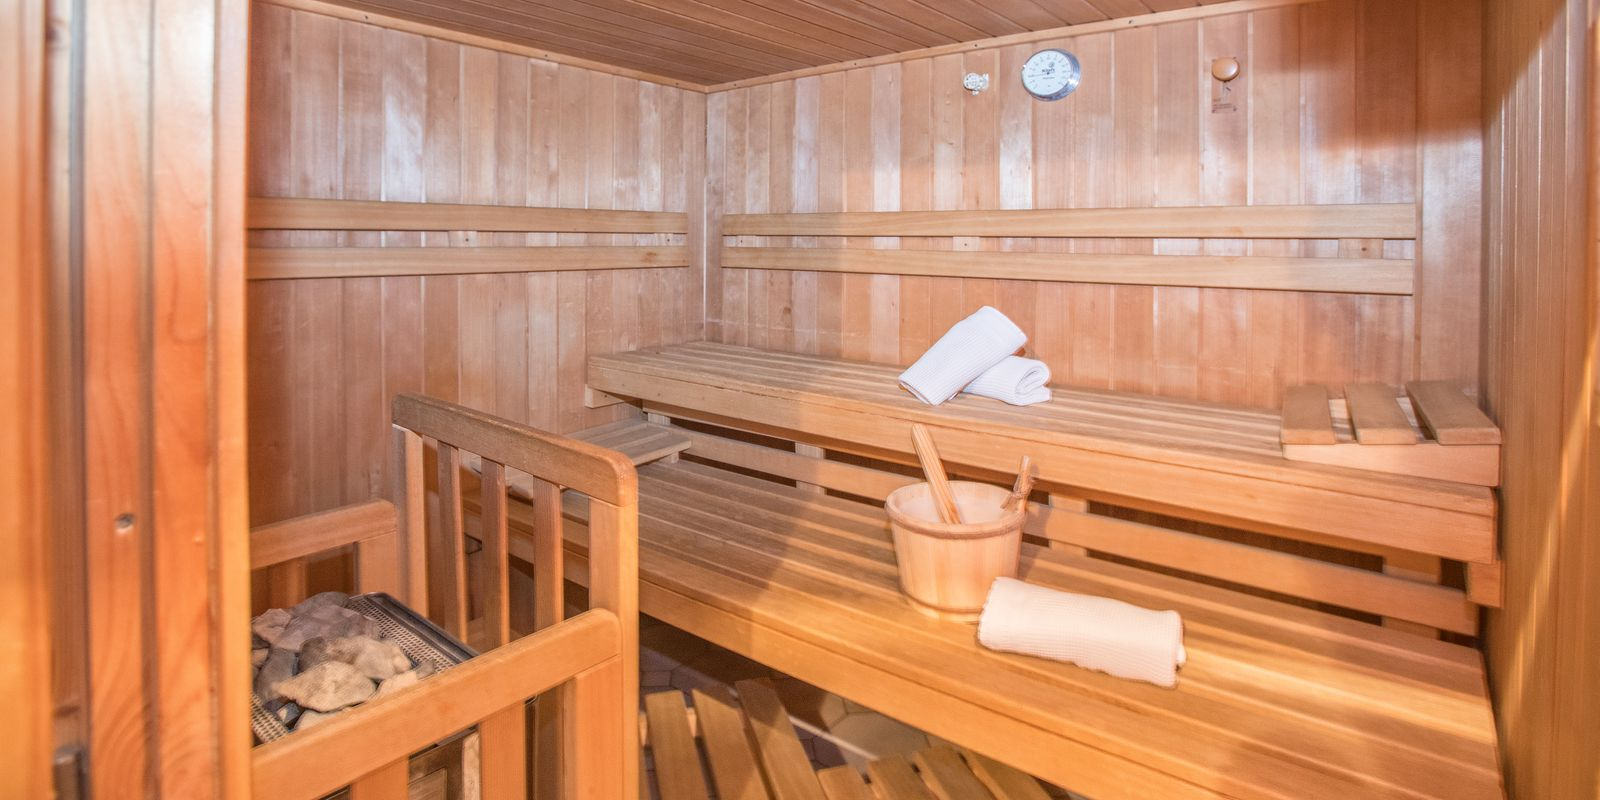 Small private sauna for house guests